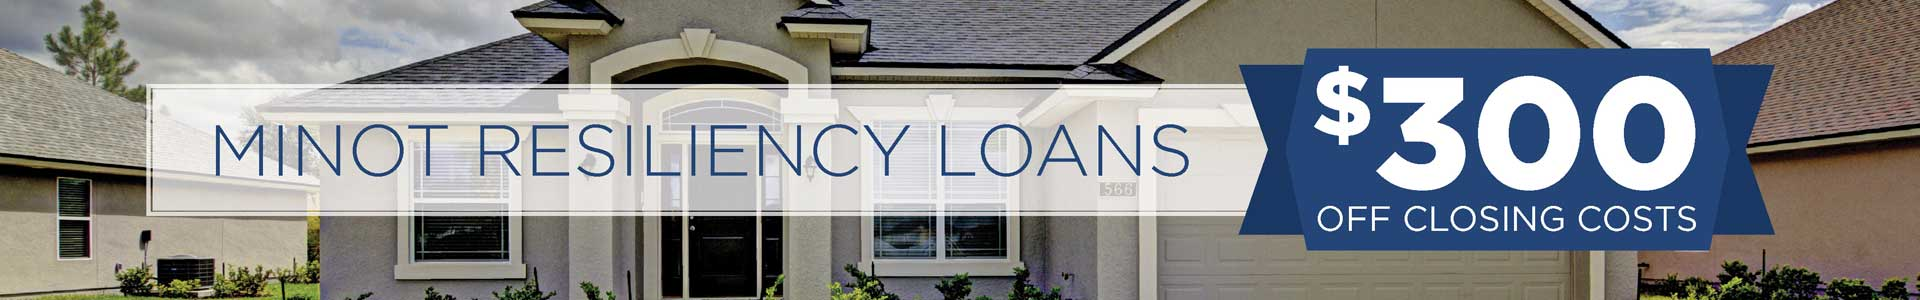 Minot Resiliency Loans. $300 off Closing Costs. House